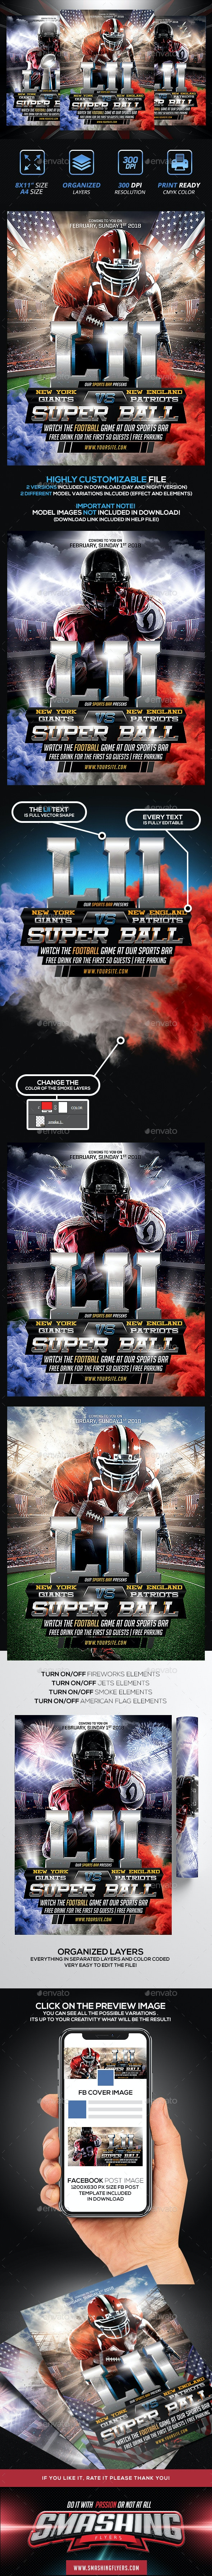 American Football Poster PSD Template - Sports Events